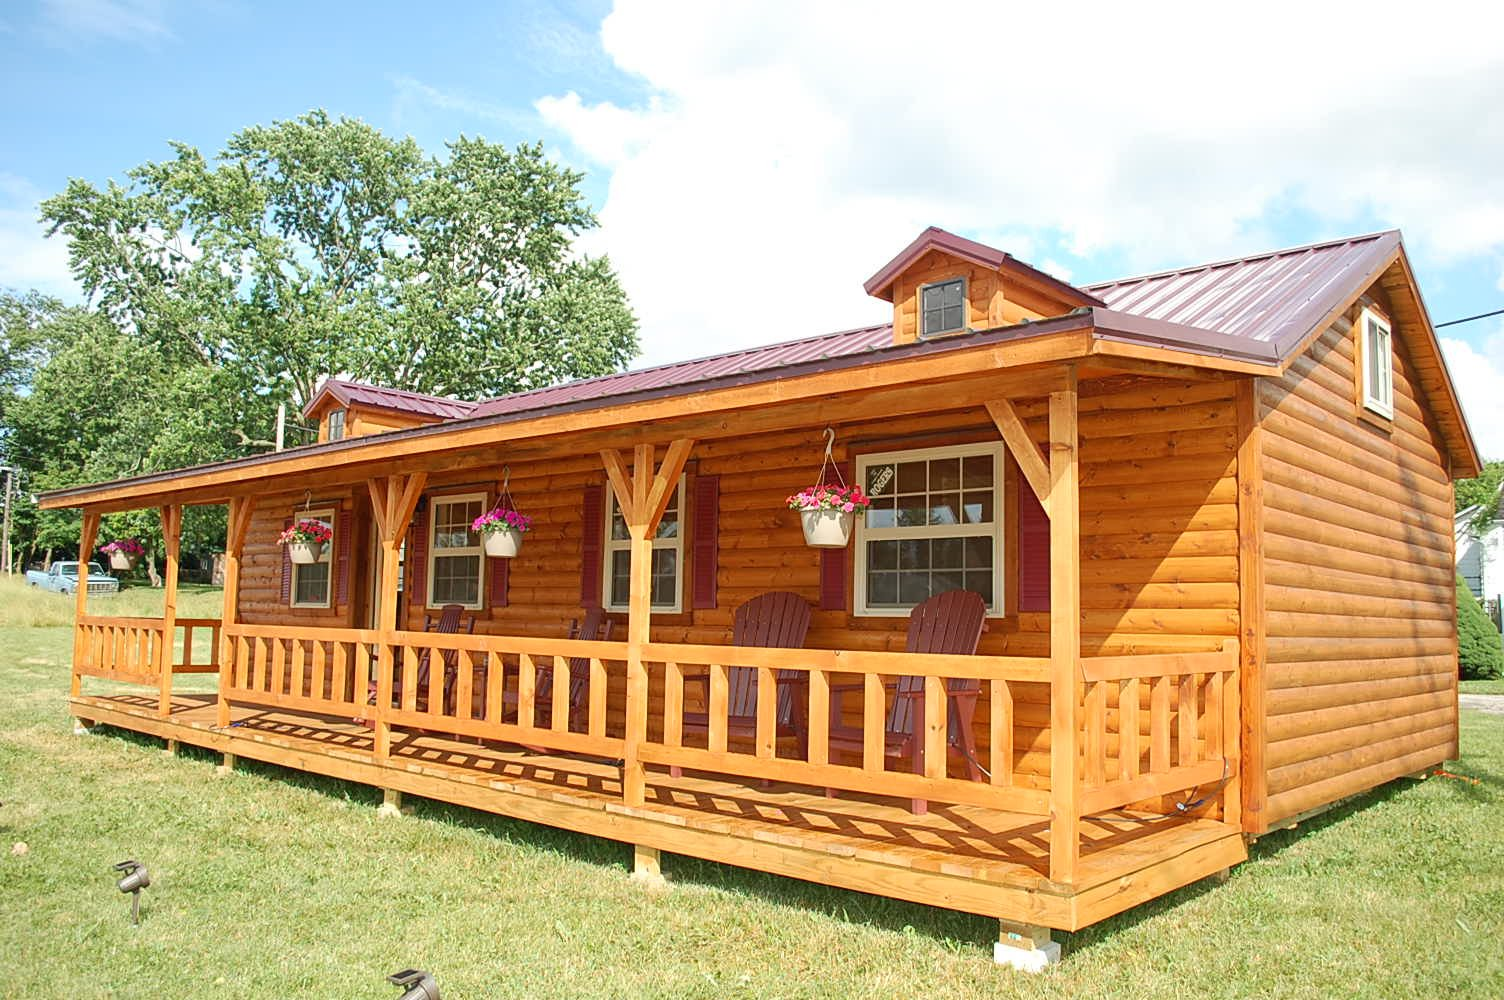 Log cabin kits 10 of the best on the market for Cabin and cottage kits